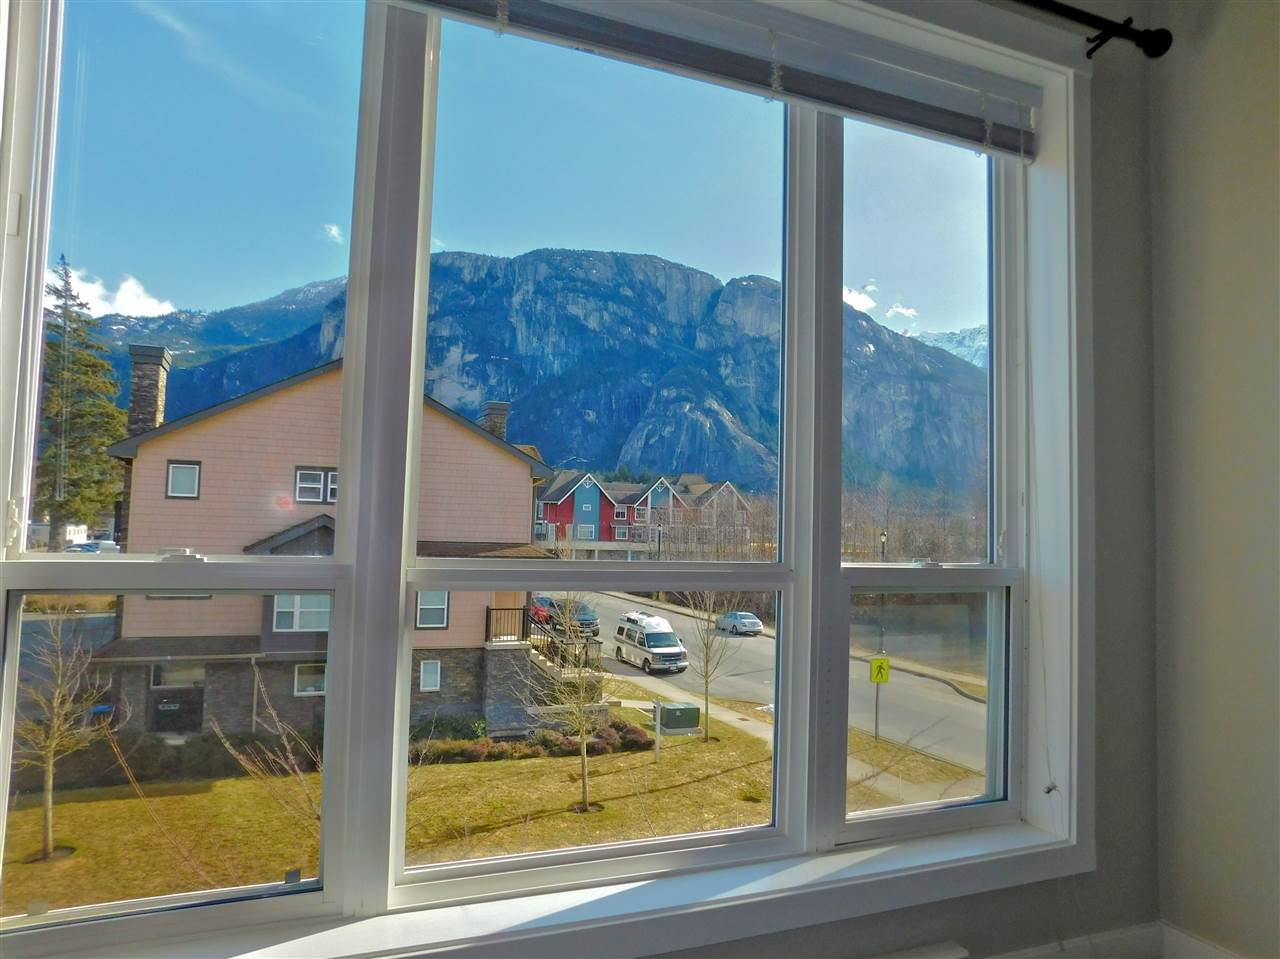 Come home to SKYE - your fabulous and spacious 4 level townhome with breath taking views and excellent walk score. The setting is amazing with open green space. Loads of room for play, office or multi use in oversized and bright loft. Enjoy your morning coffee in this south facing unit located just a minute walk from the library, Marina, biking trails, boating and all other amenities you would need. Bonus room in basement with windows and success from garage as well to conform to your needs. Single garage. Love to garden? Community gardens are located just a minute walk away at $30/year (depending on availability). Commute to Vancouver or Whistler in just 45 minutes. Immaculate, owner occupied unit. Call for a private tour.